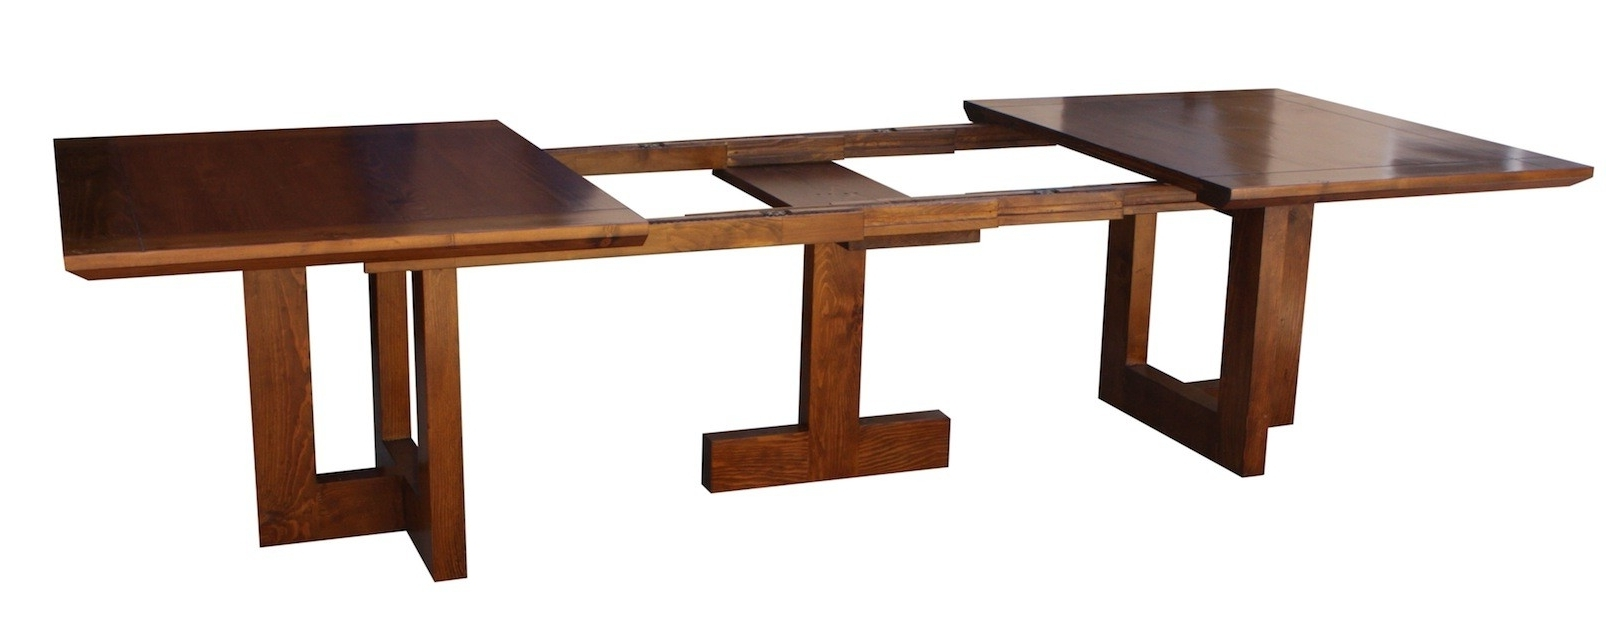 Latest Dining Tables Extensions – Soulpower For Amos 7 Piece Extension Dining Sets (View 14 of 25)